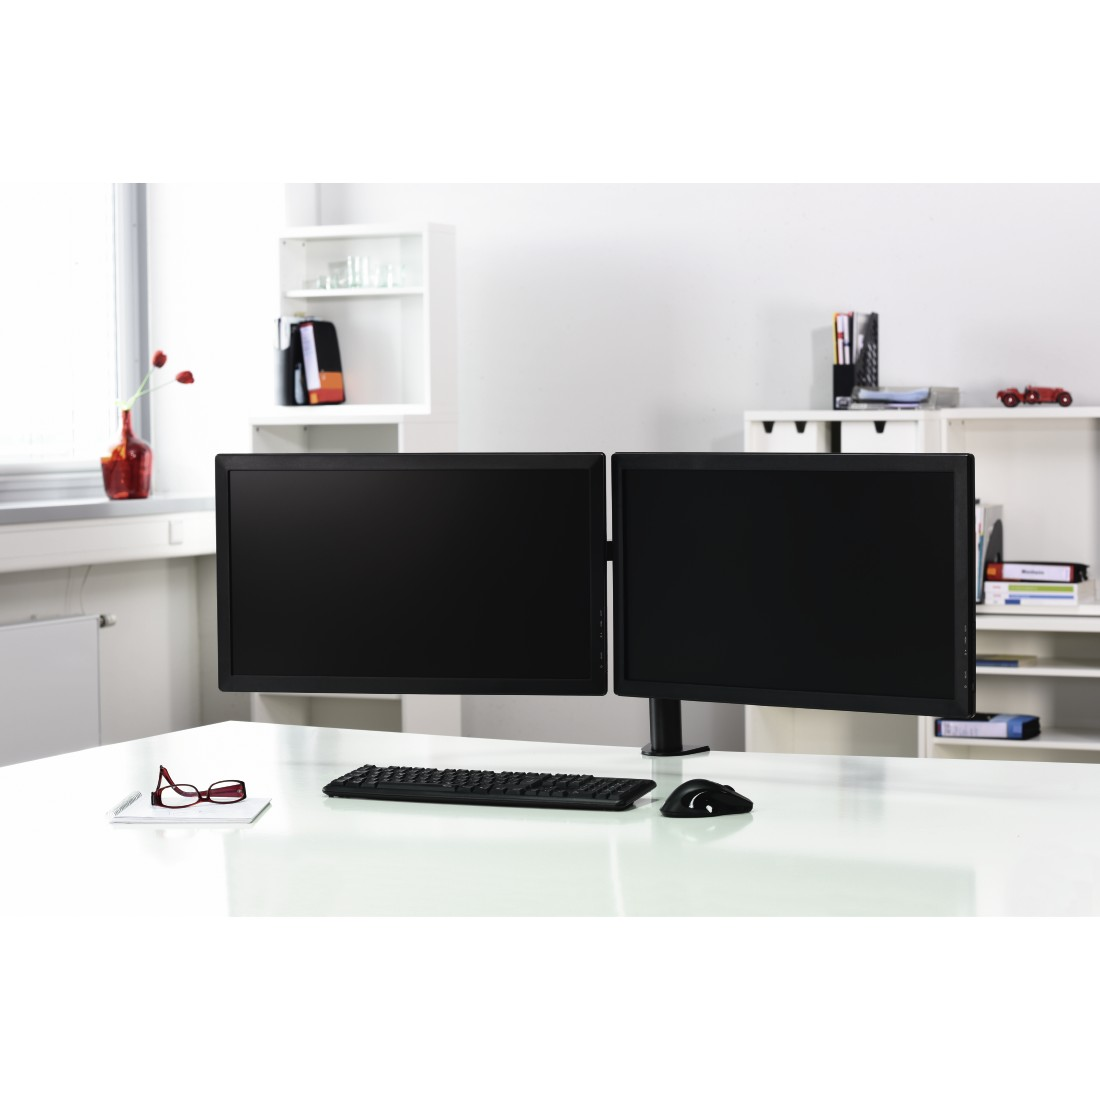 "awx High-Res Appliance - Hama, FULLMOTION Monitor Arm, for 2 screens, 66 cm (26""), 2 arms each, black"